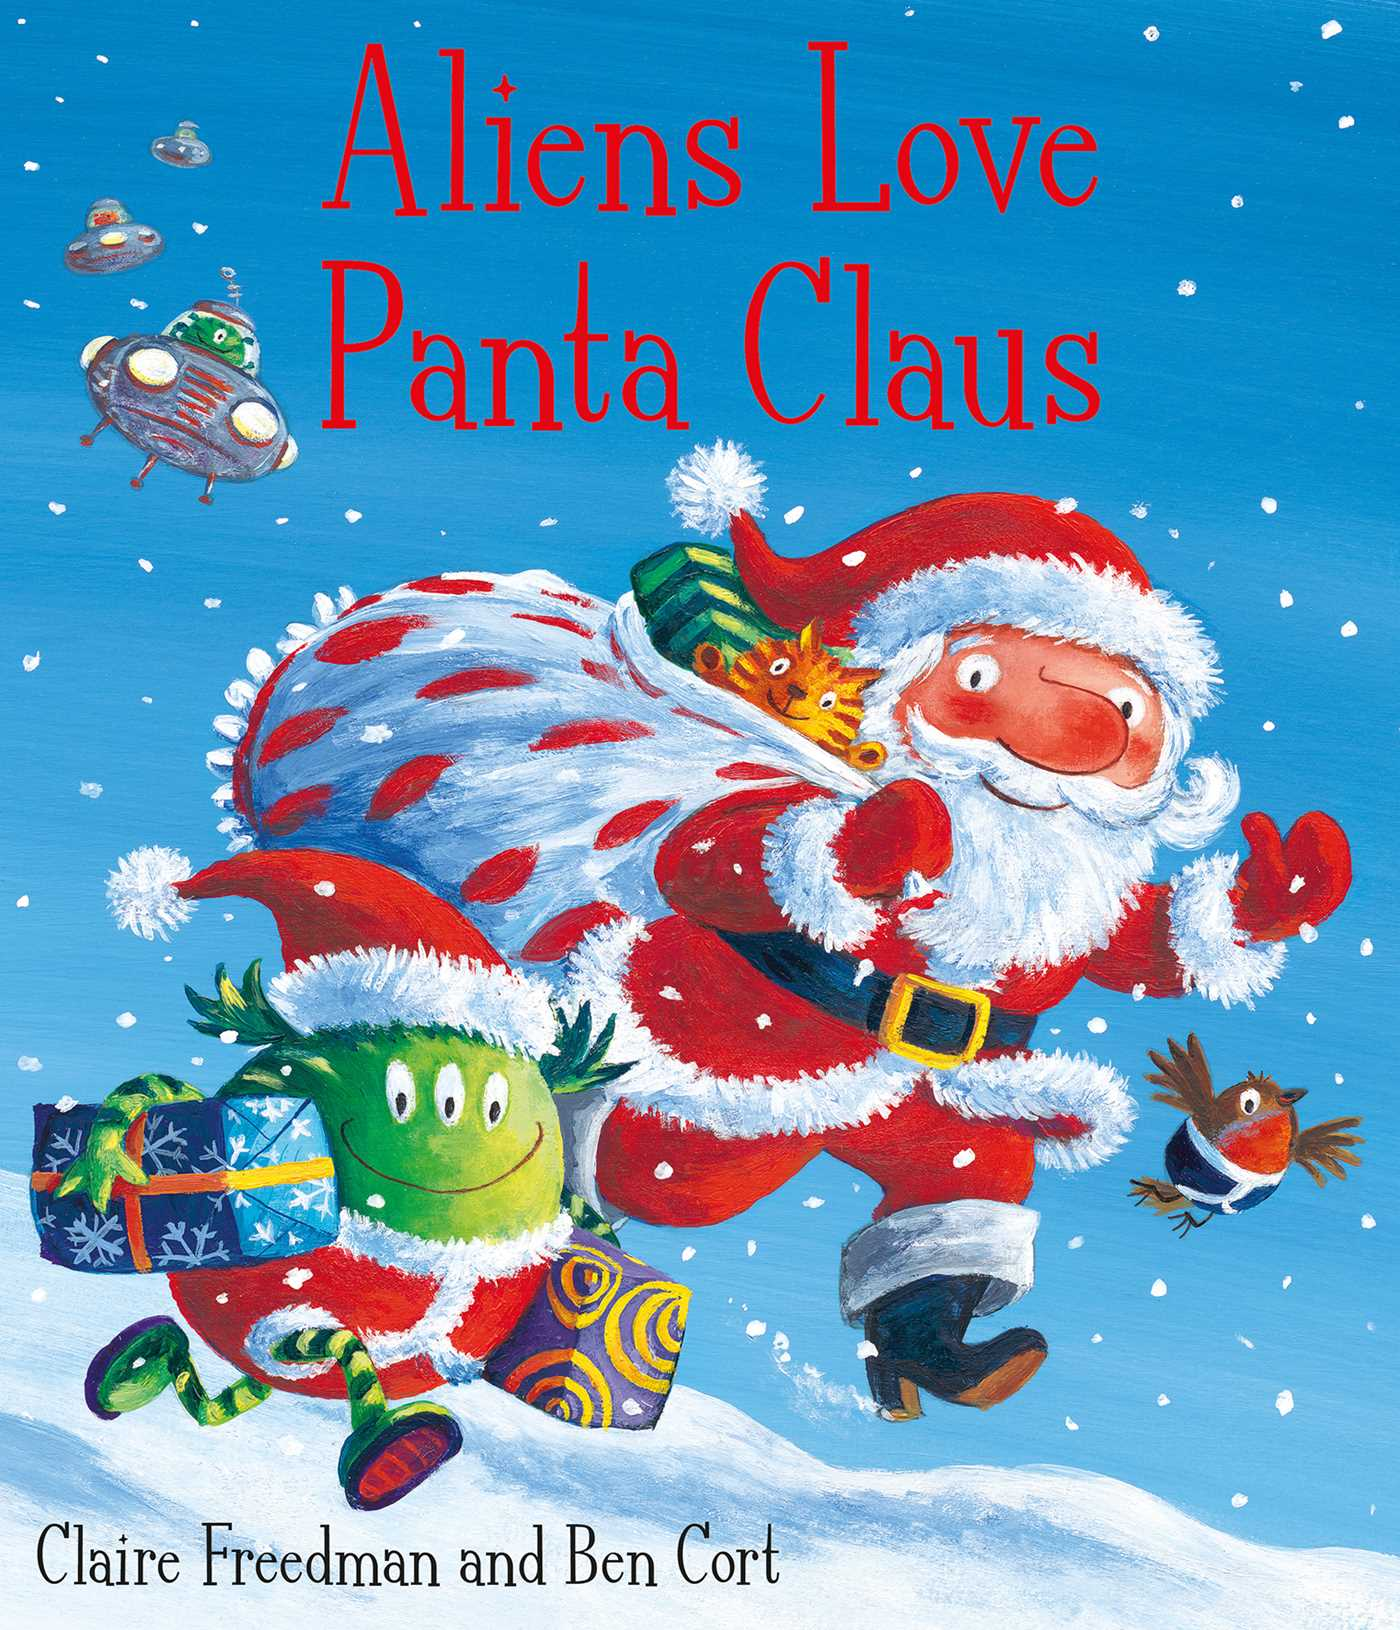 Aliens love panta claus 9781847385703 hr